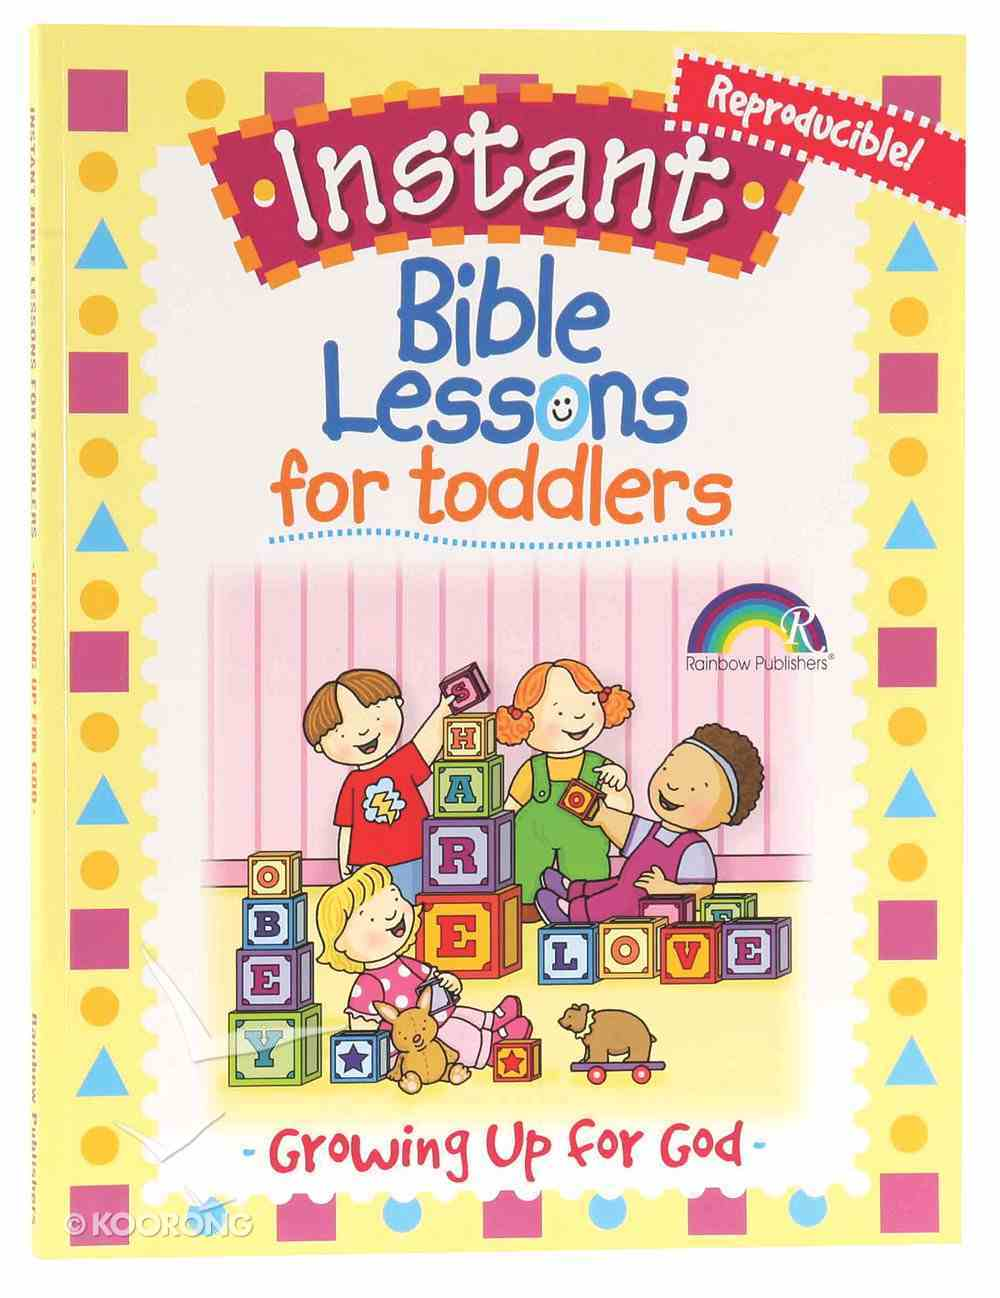 Growing Up For God (Reproducible, Ages 1-3) (Instant Bible Lessons Series) Paperback